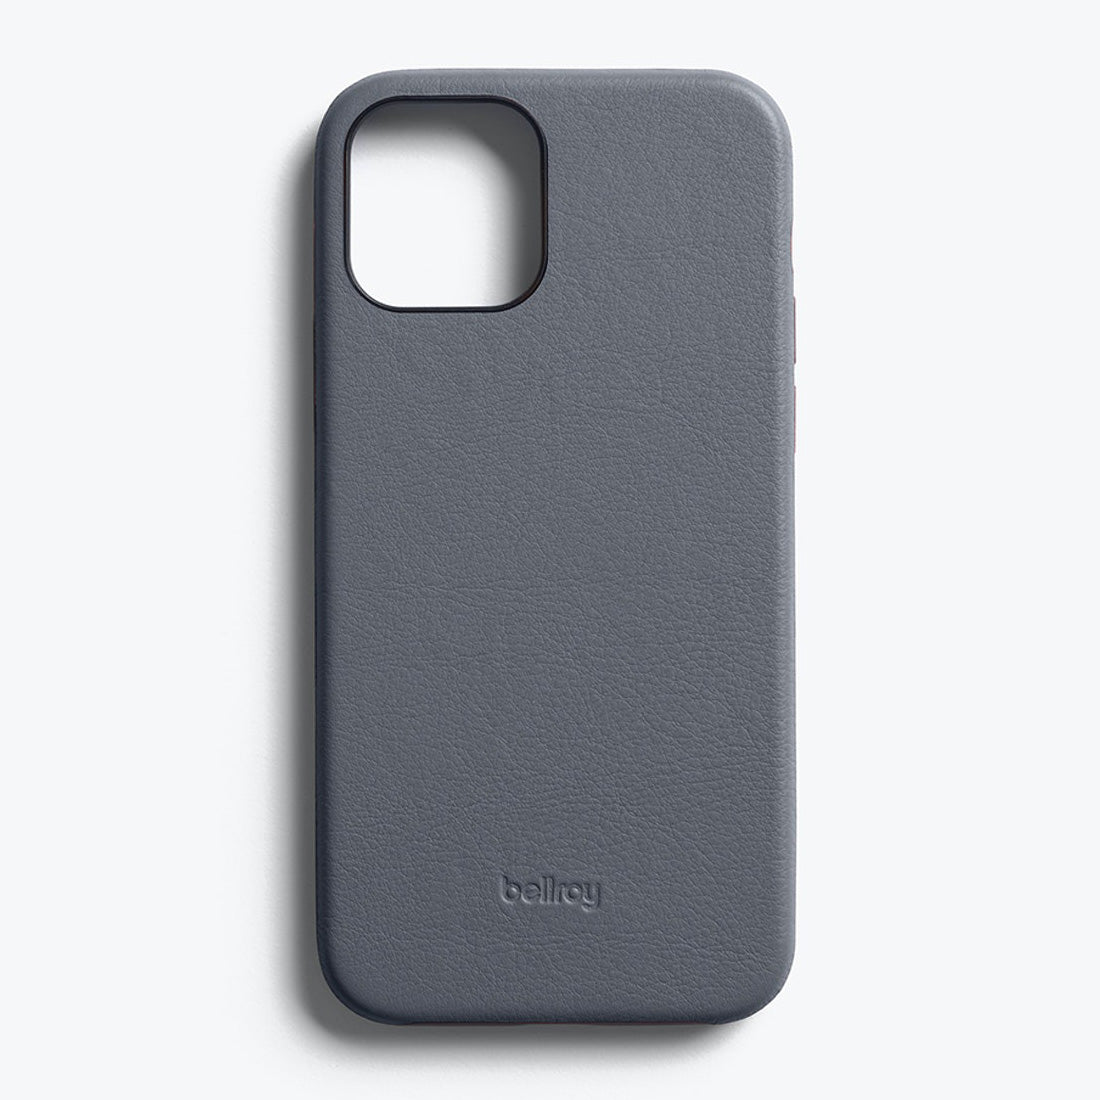 Bellroy Slim Genuine Leather Case For iPhone iPhone 12 Pro Max - GRAPHITE